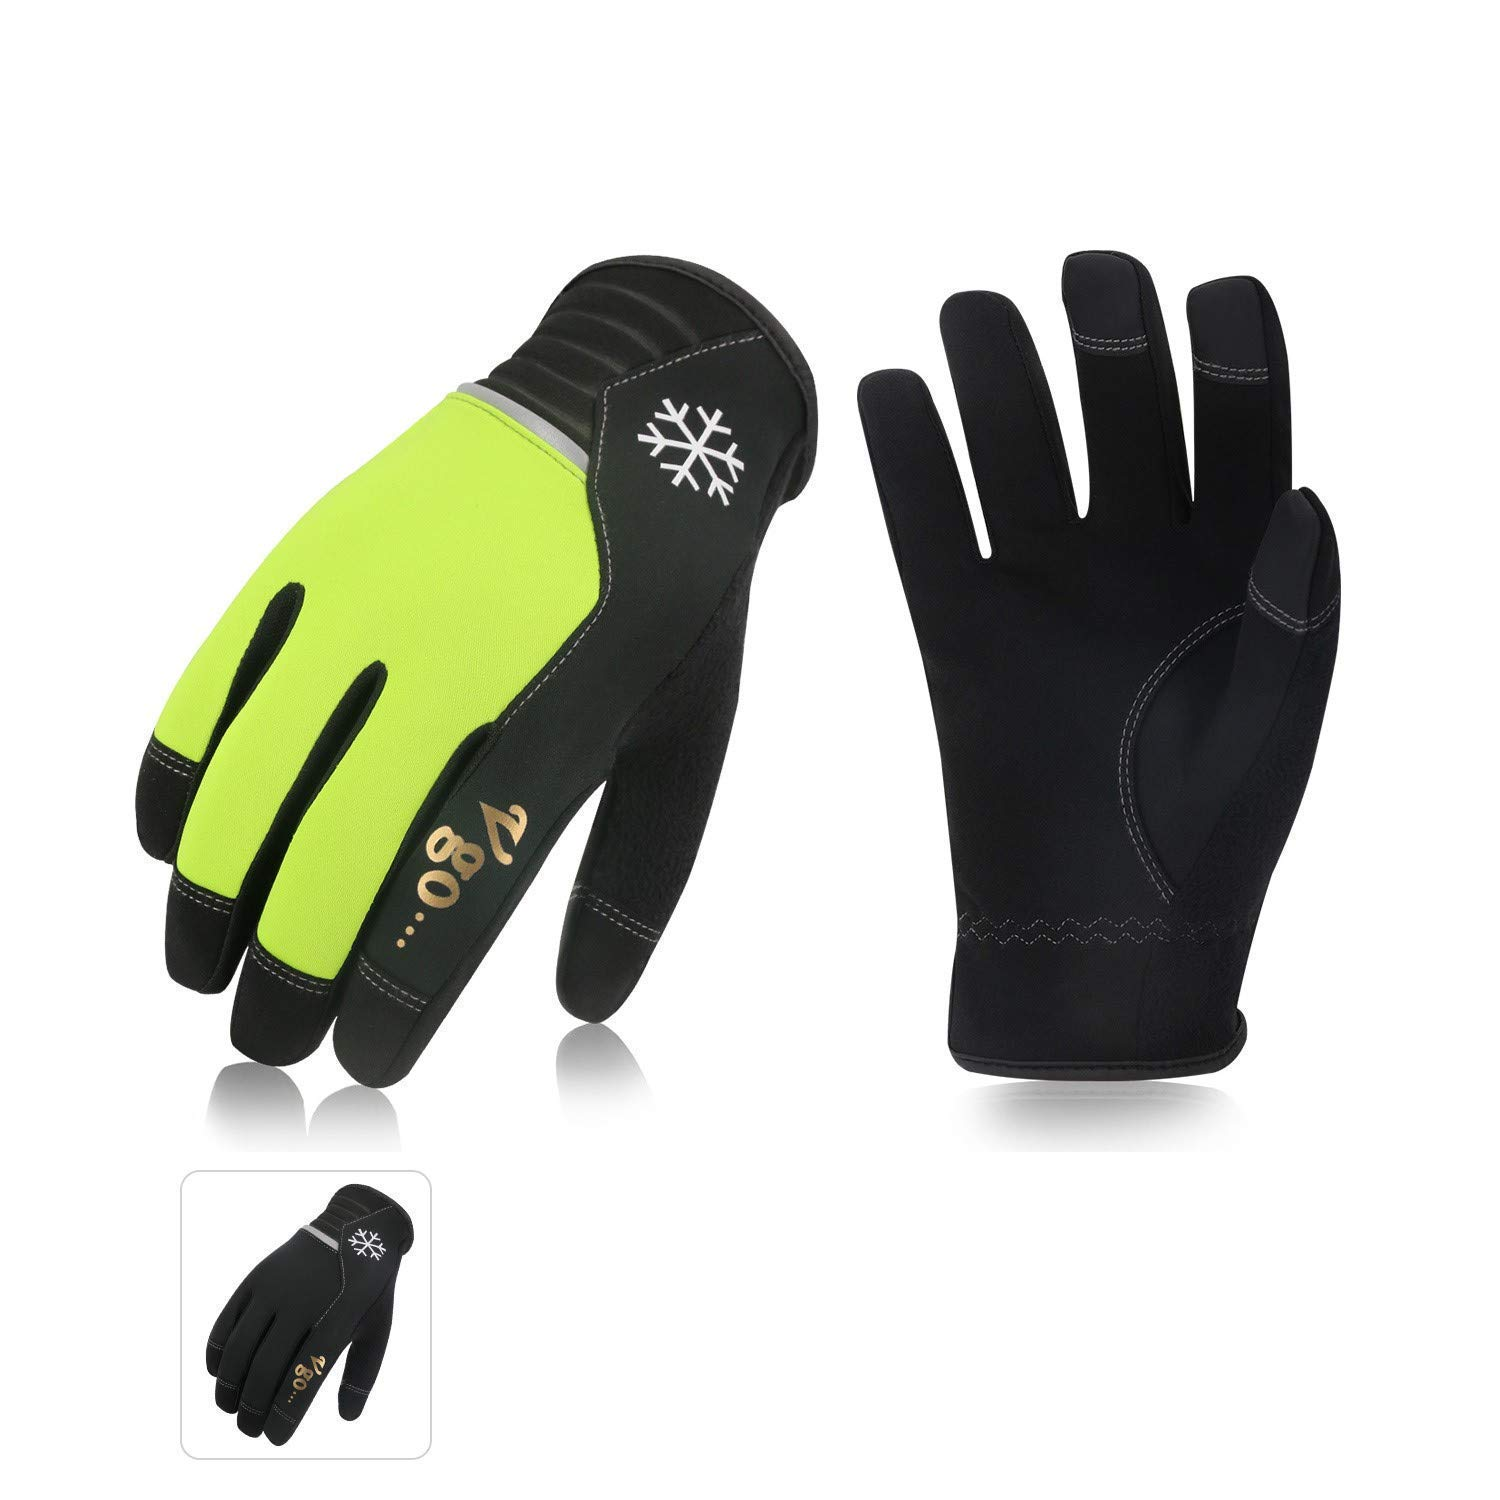 Vgo 2Pairs 41℉ or Above Winter Leather Gloves High Dexterity Cold Storage Work Gloves,Touchscreen (Size M,Black&Fluorescent Green,AL8772)